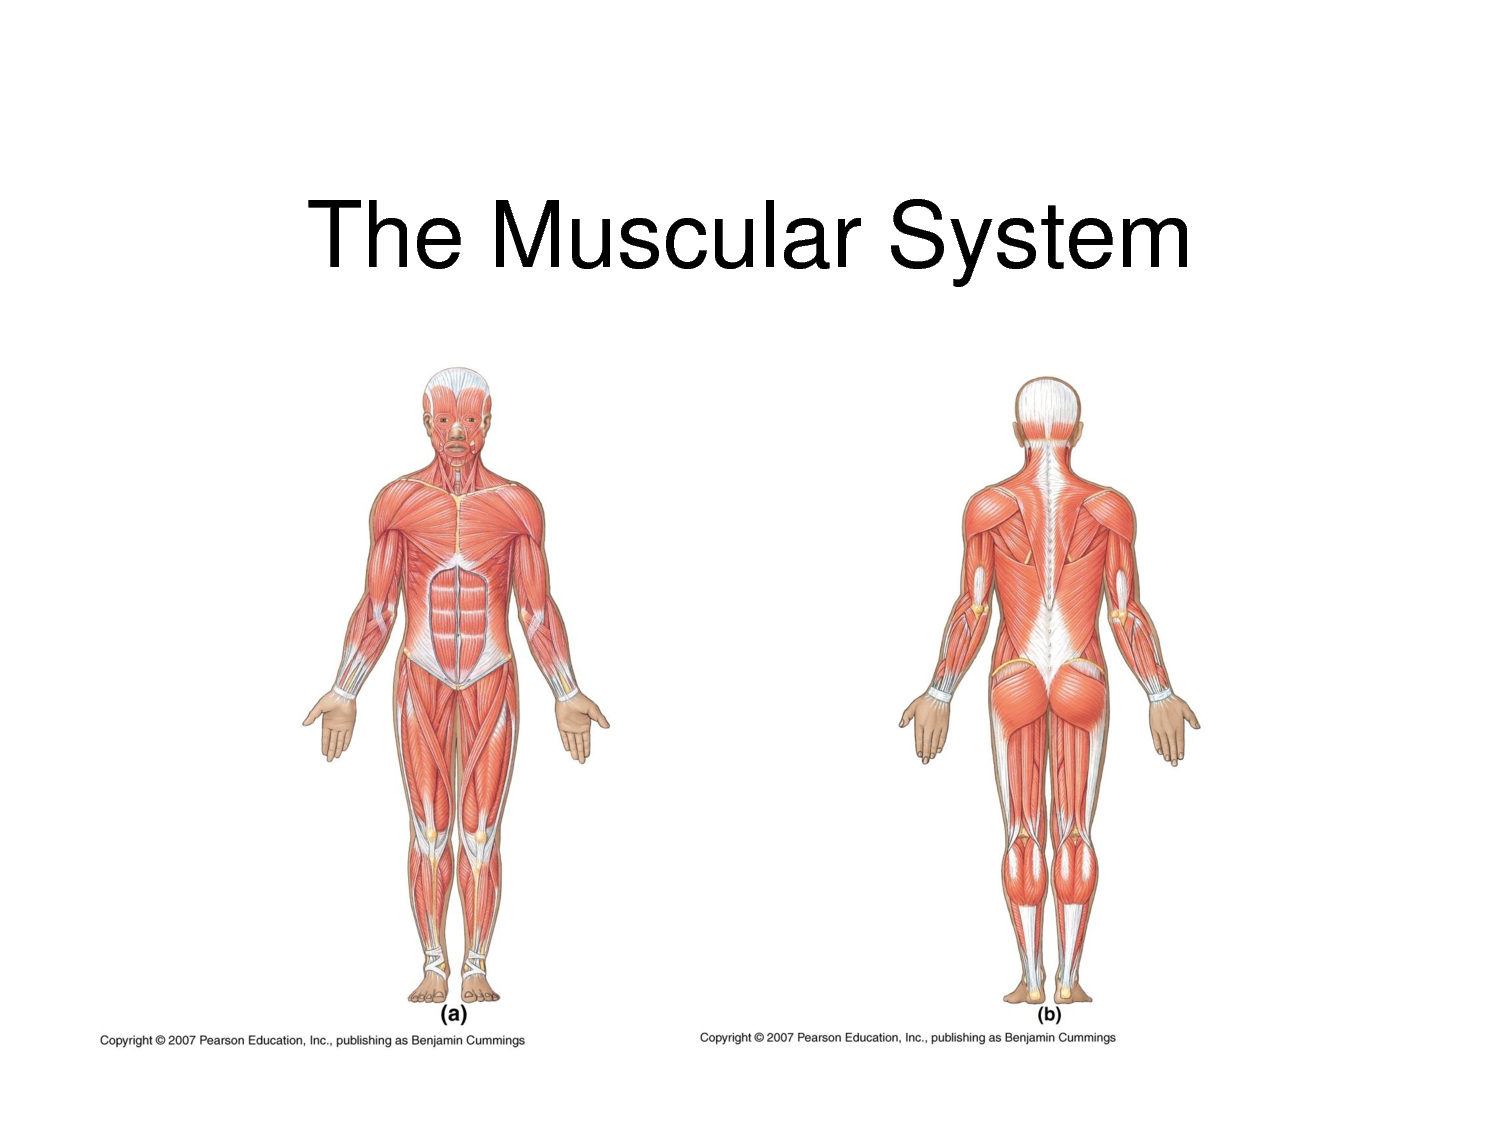 the muscular system Synonyms for muscular at thesauruscom with free online thesaurus, antonyms, and definitions find descriptive alternatives for muscular.